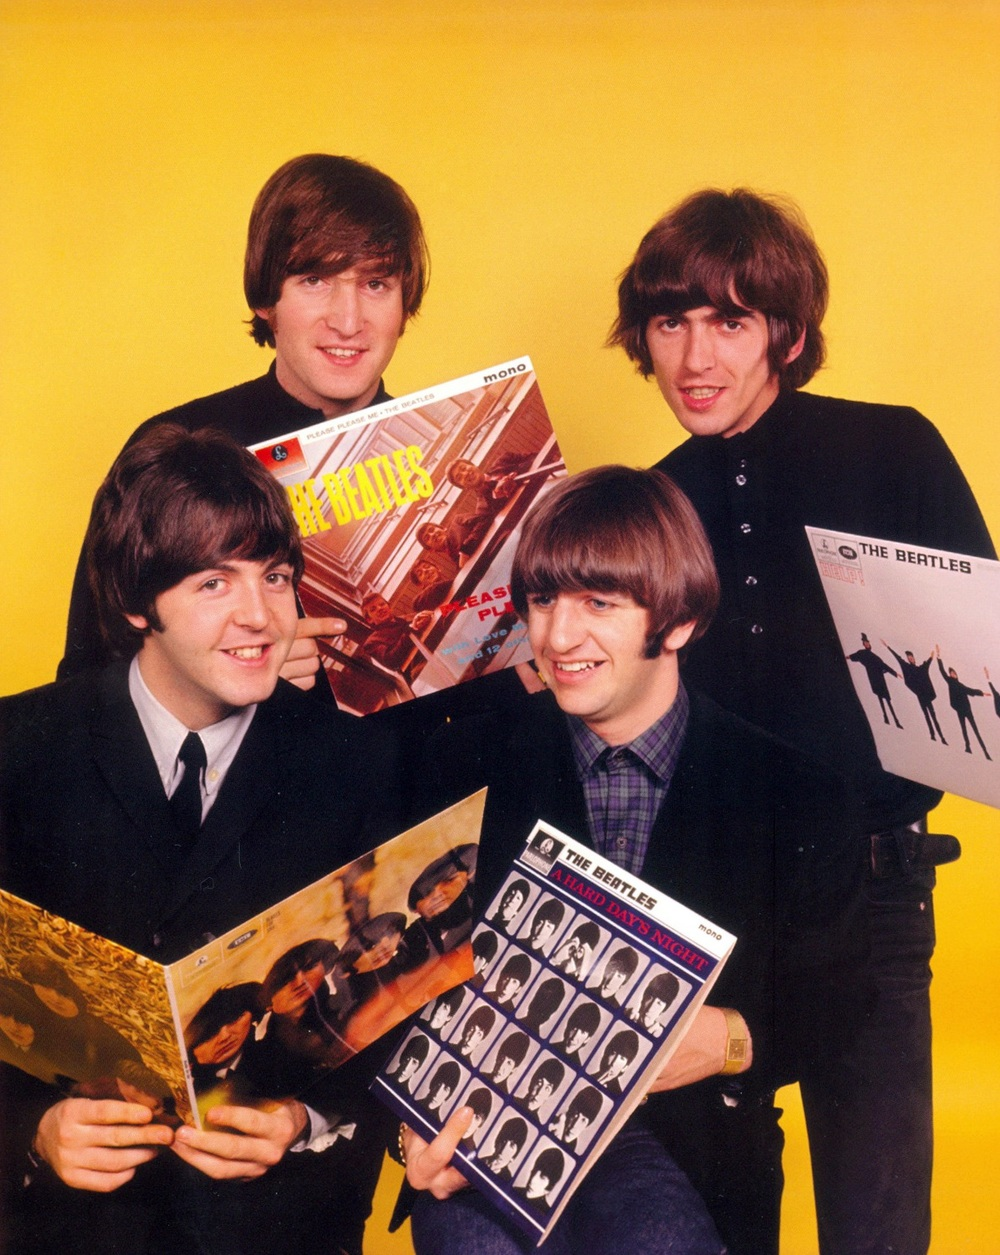 The Beatles holding some Beatles' LPs, 1964.